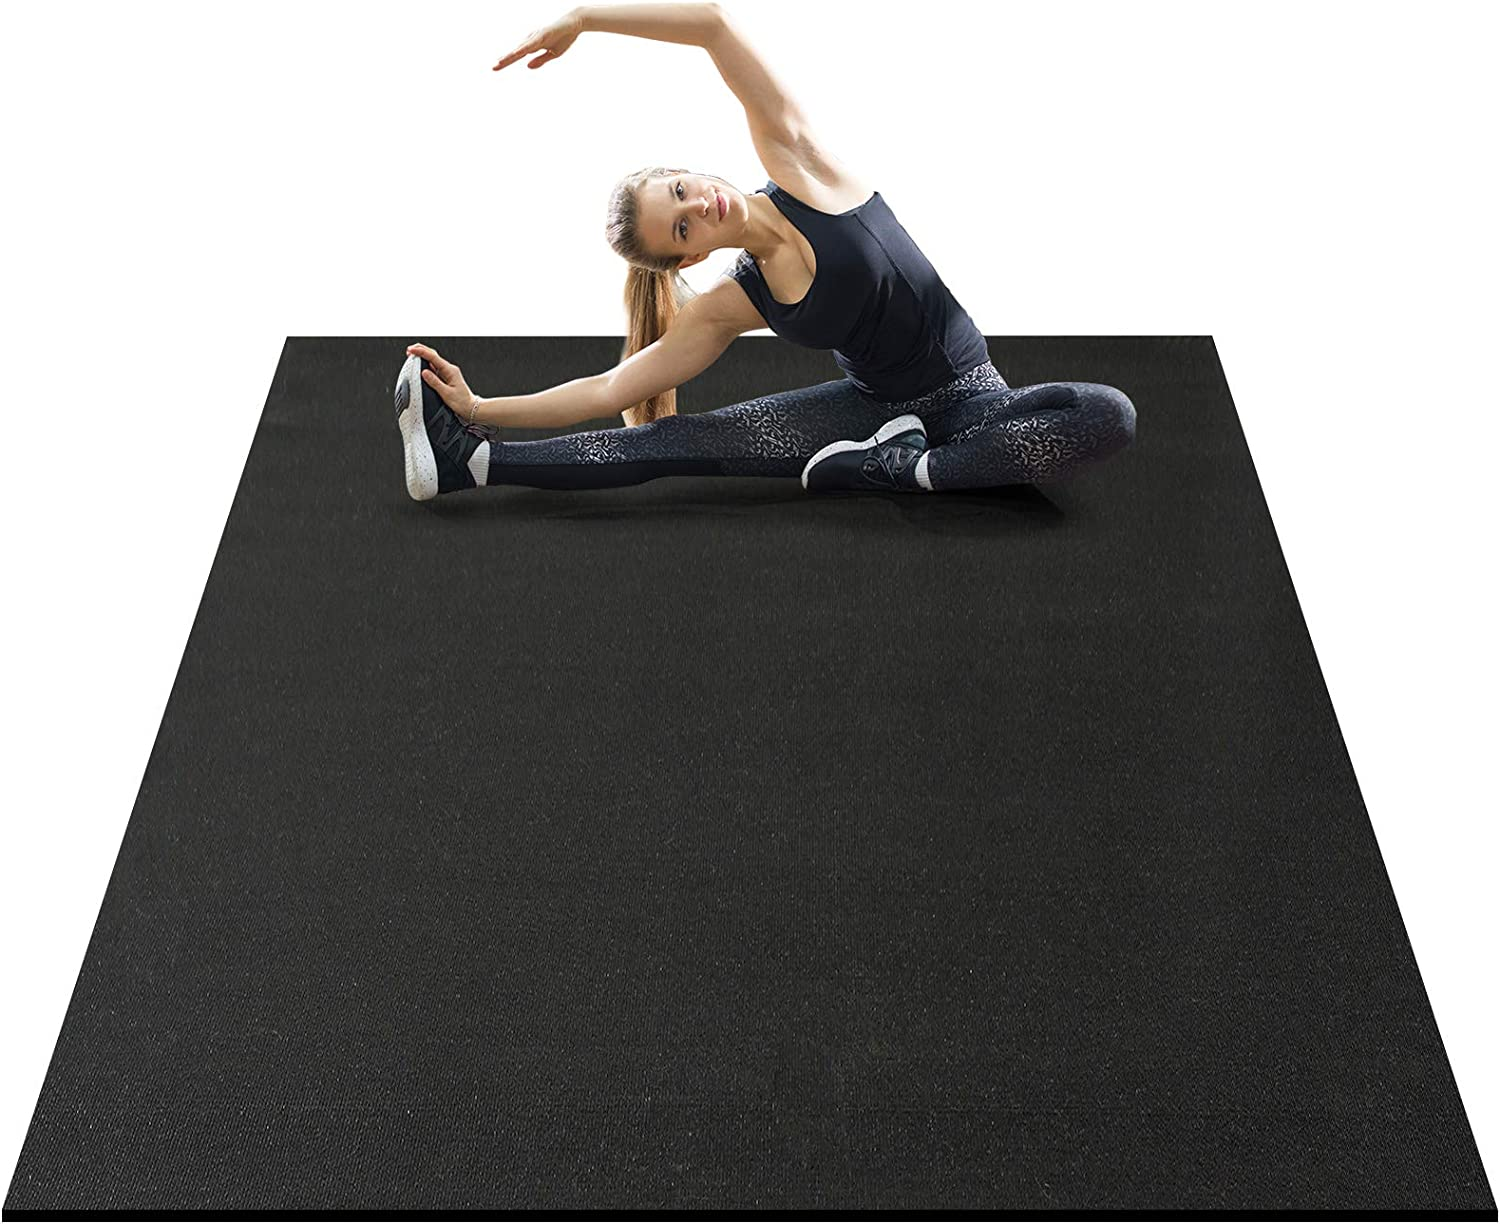 AROGAN Non Slip Exercise Mat for Home Gym Flooring 6x5 Feet, Large Thick Workout Mats 7mm, Durable Cardio Mat, Suitable for Jump, Plyo, Fitness, Stretch, Shoe Friendly